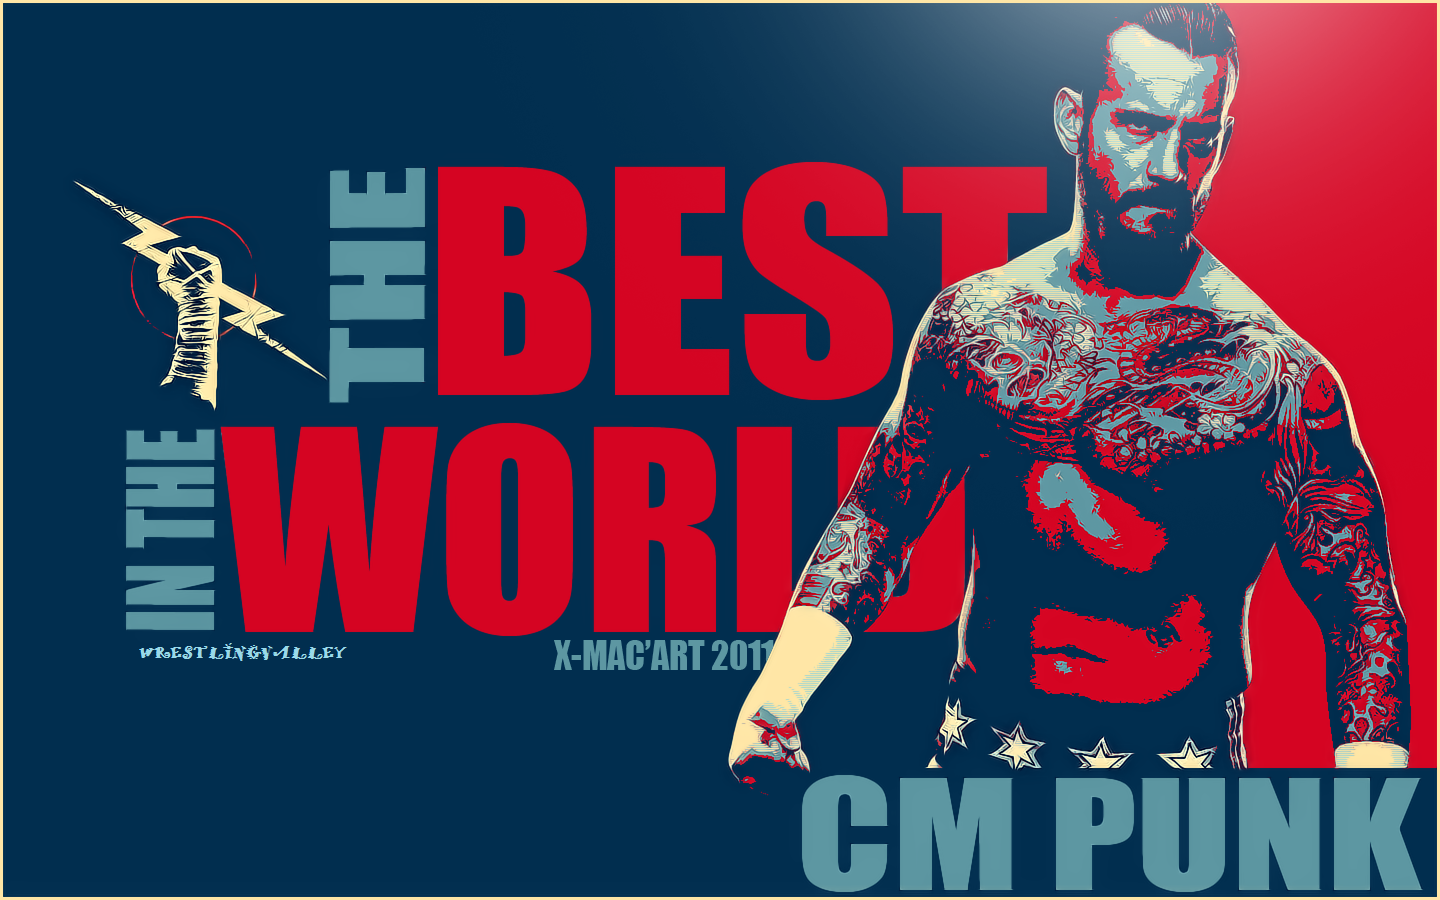 Wallpaper Of Cm Punk Wwe Fast Lane Wwe Superstars And Wwe wallpaper 1440x900